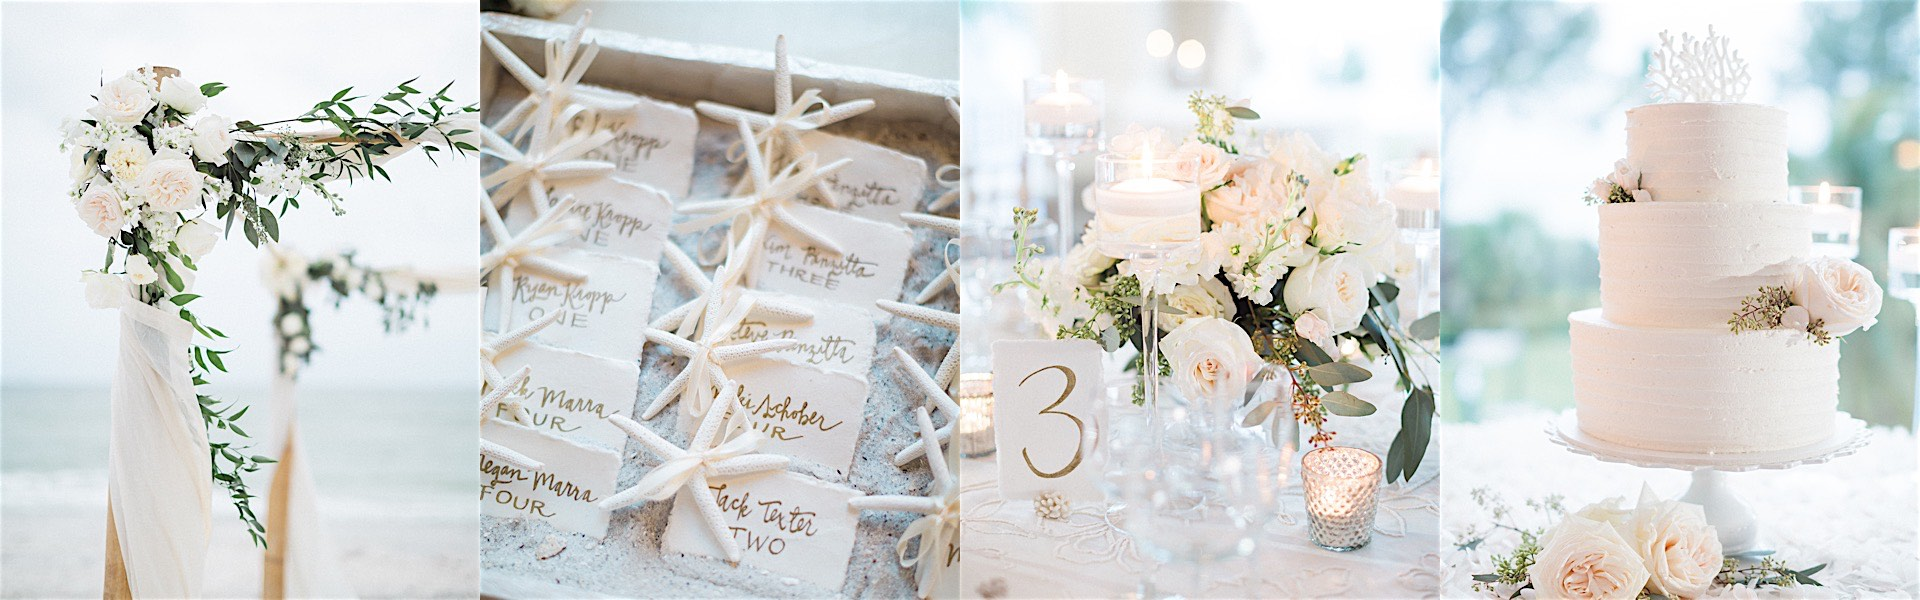 This Florida Wedding is Seaside Perfection - MODwedding